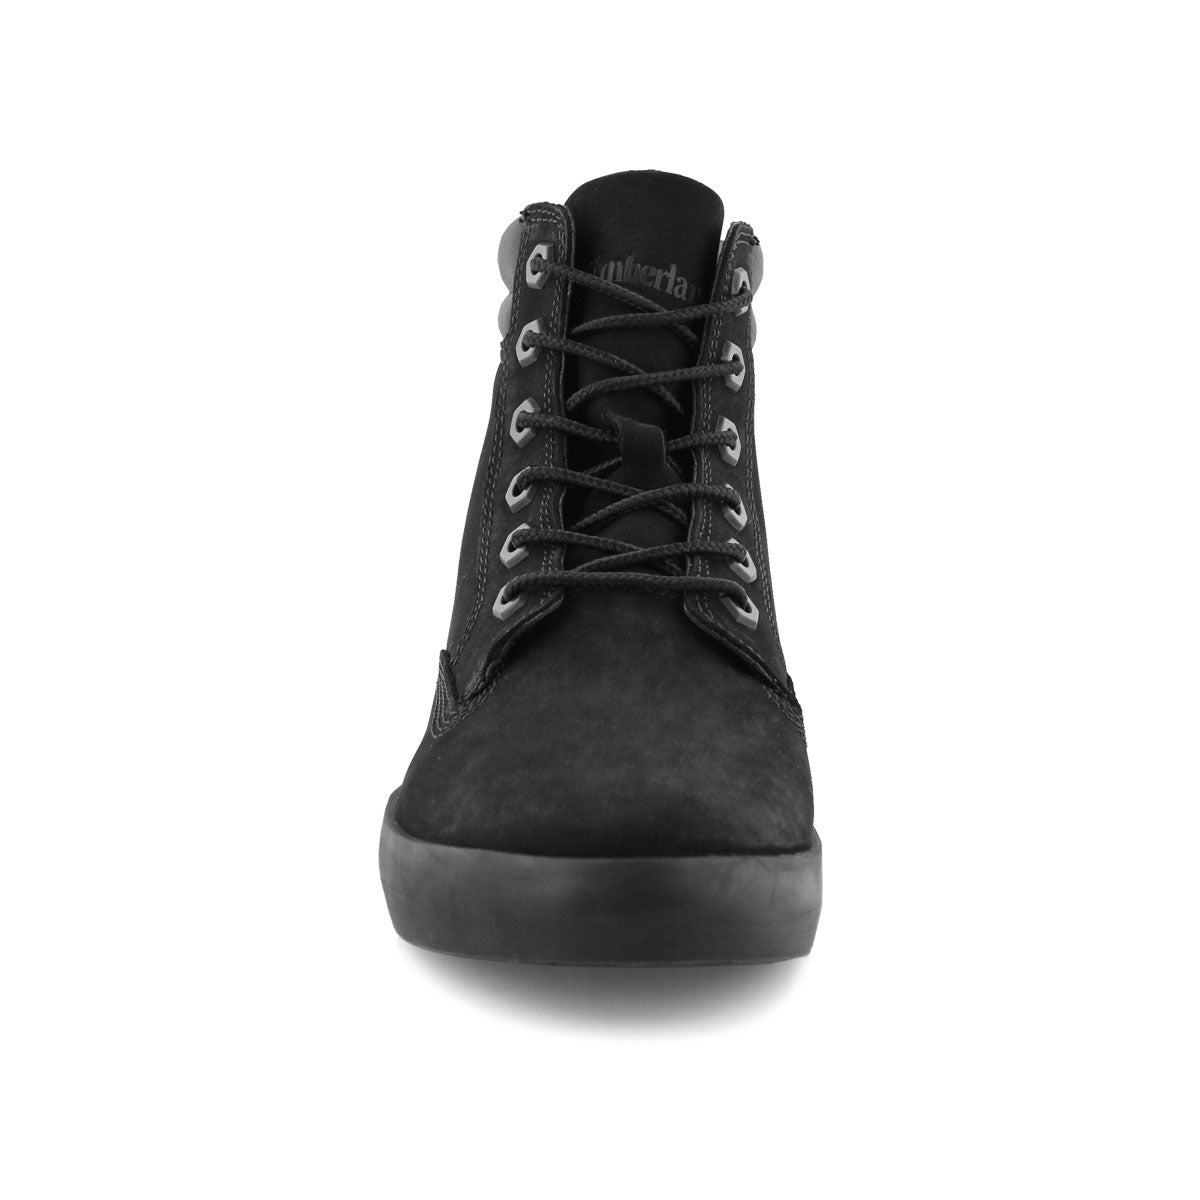 Lds Dausette black lace up boot